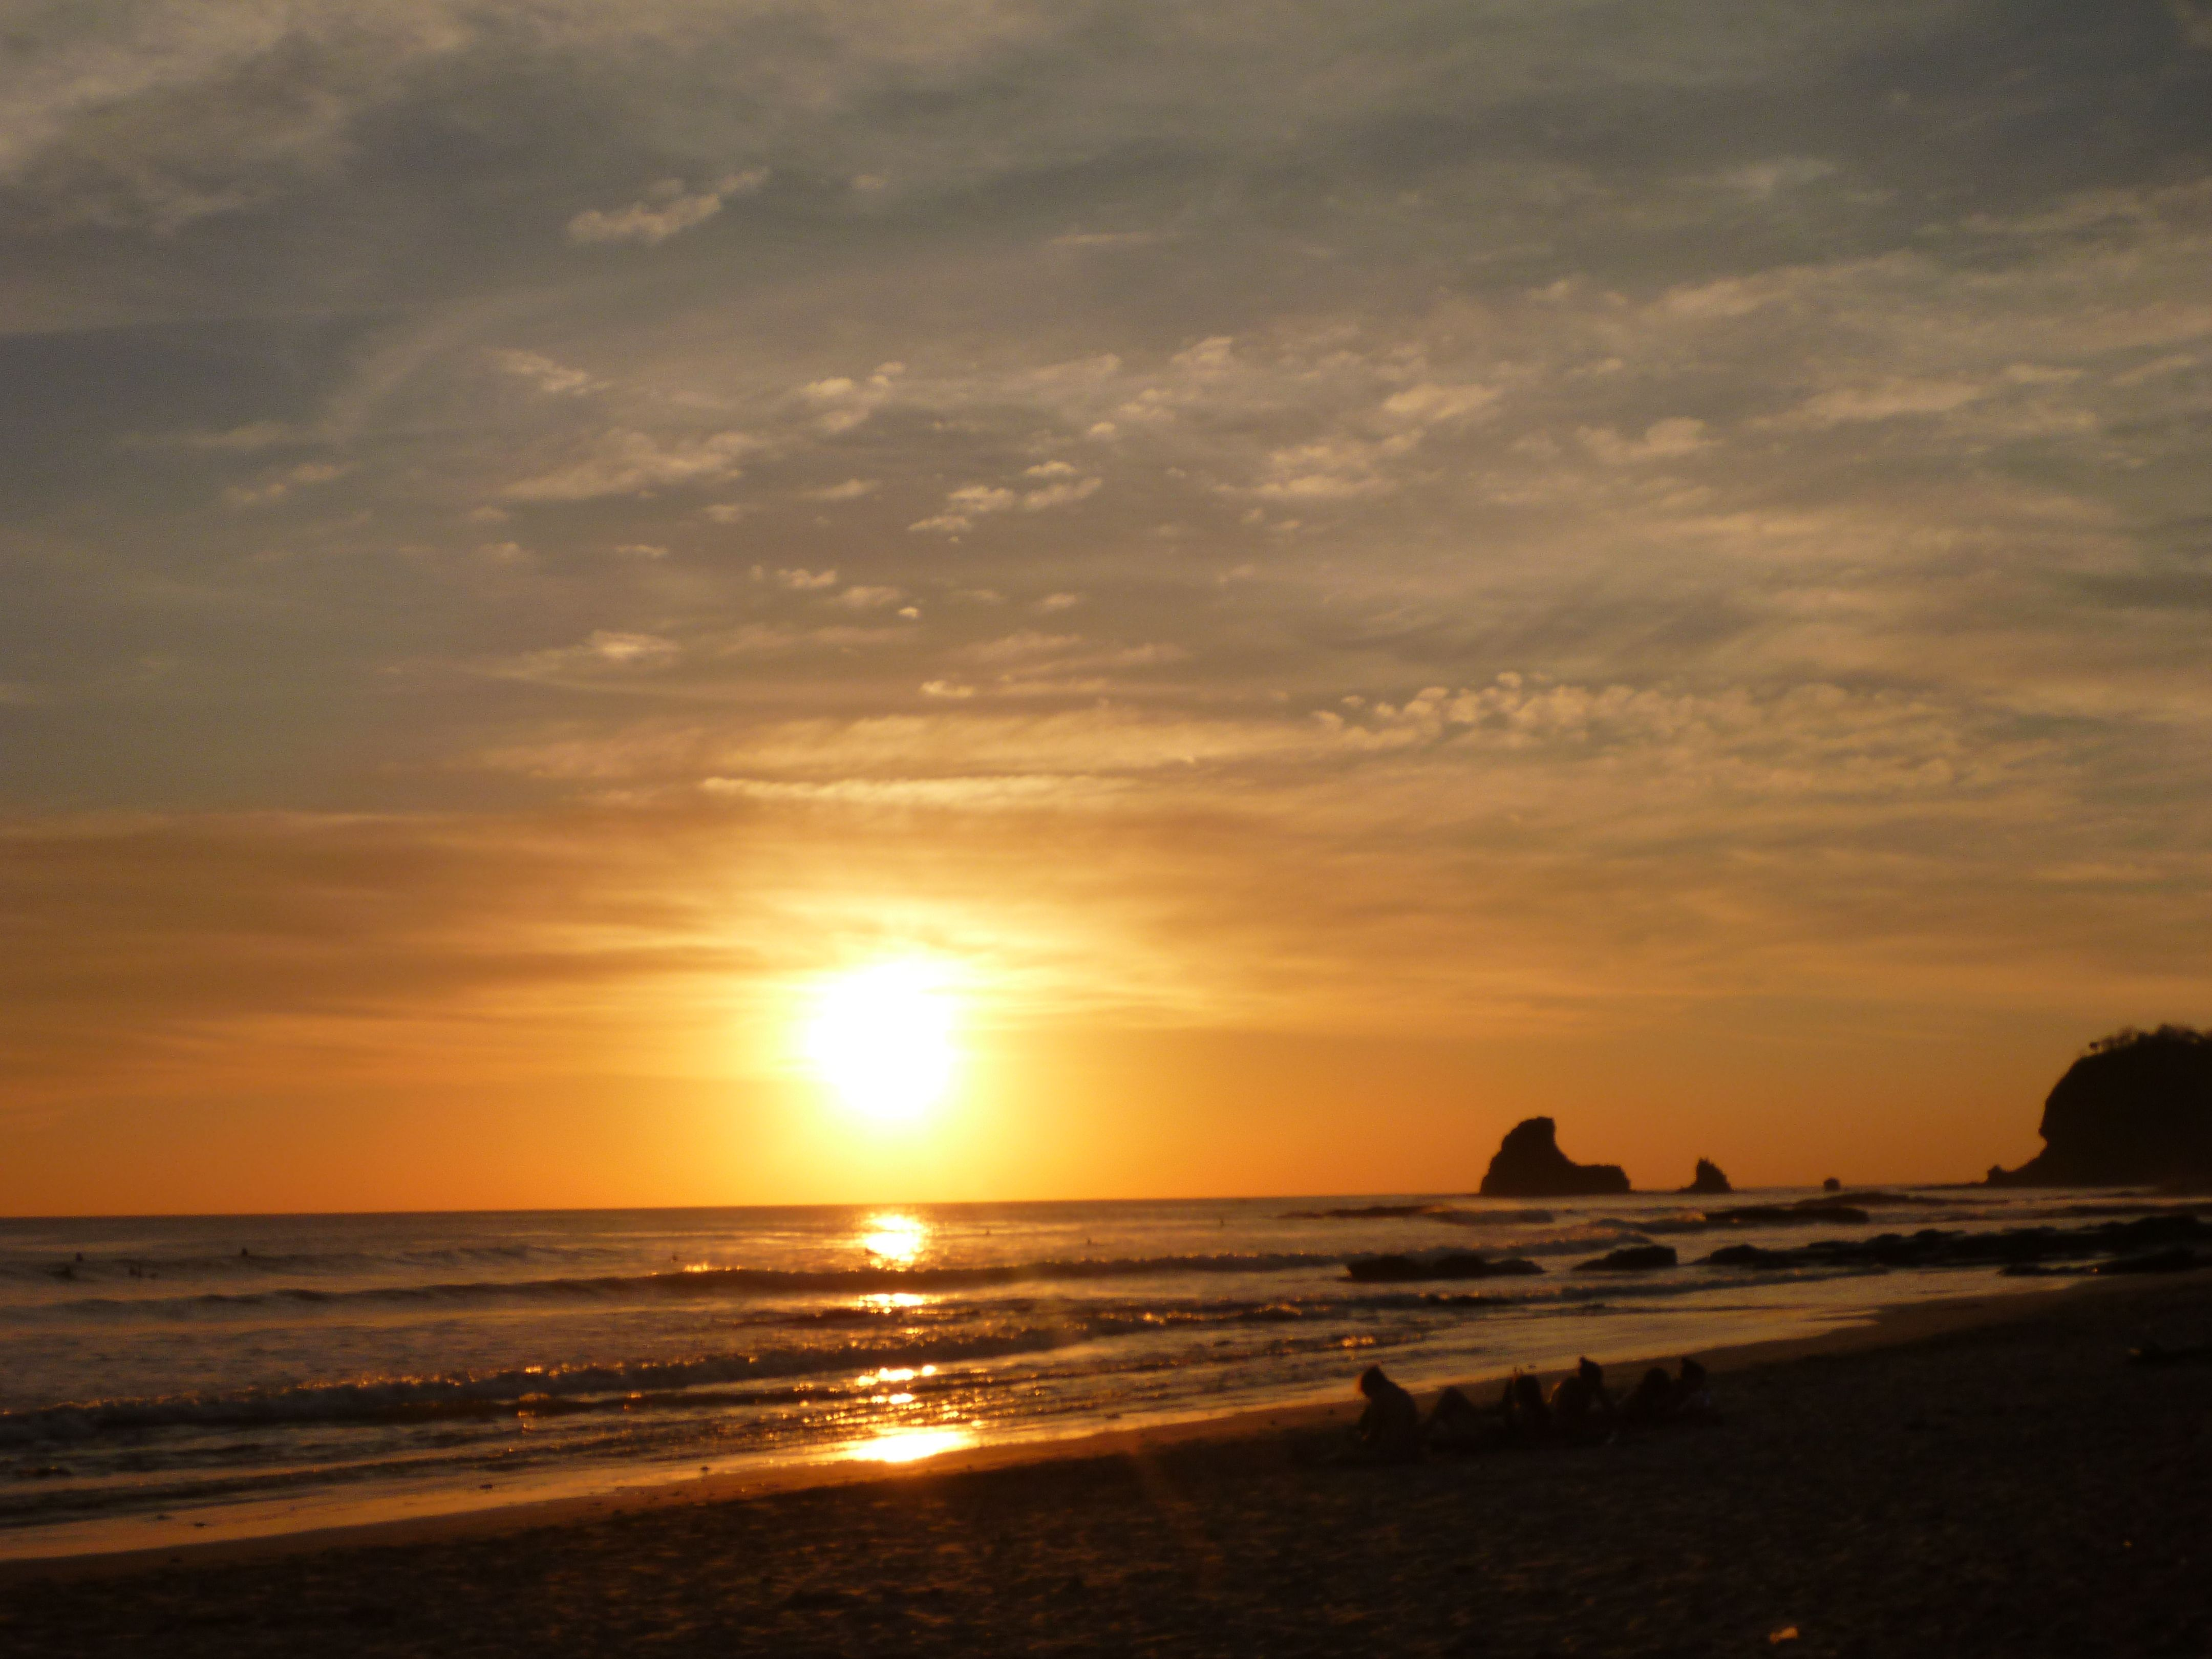 Sunset Magic - Playa Hermosa Nicaragua Beach Life Pinterest